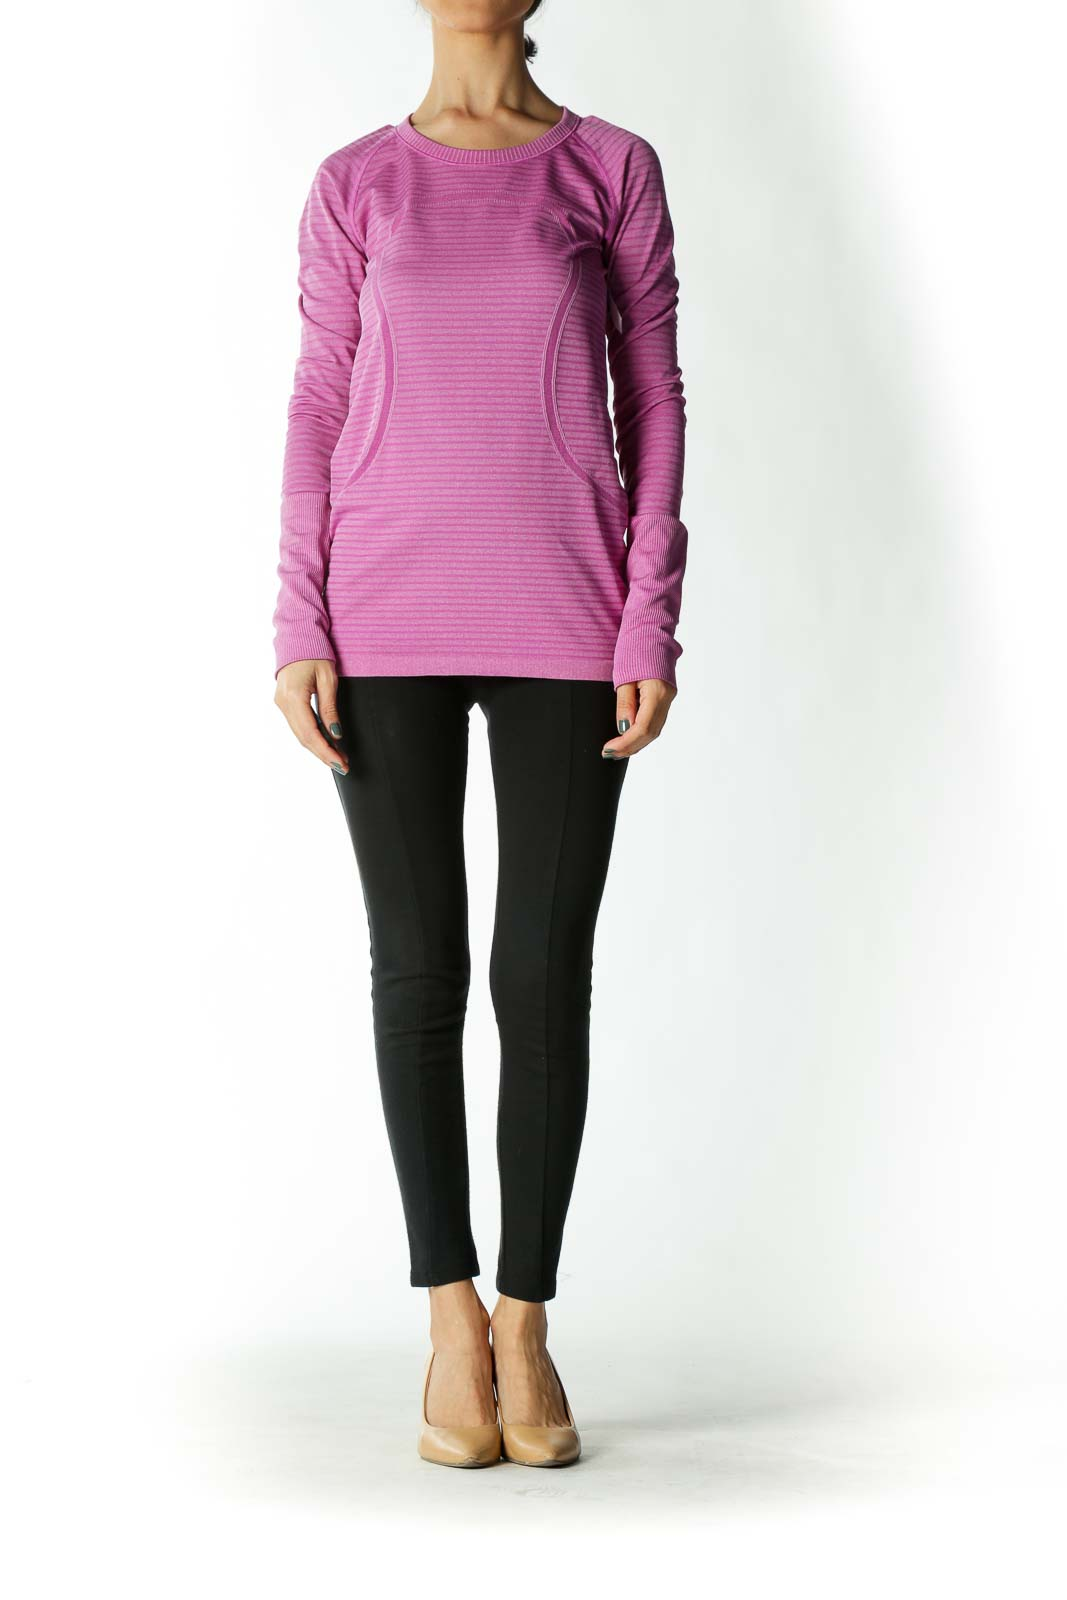 Purple Long-Sleeve Fitted Yoga Top with Thumb Holes